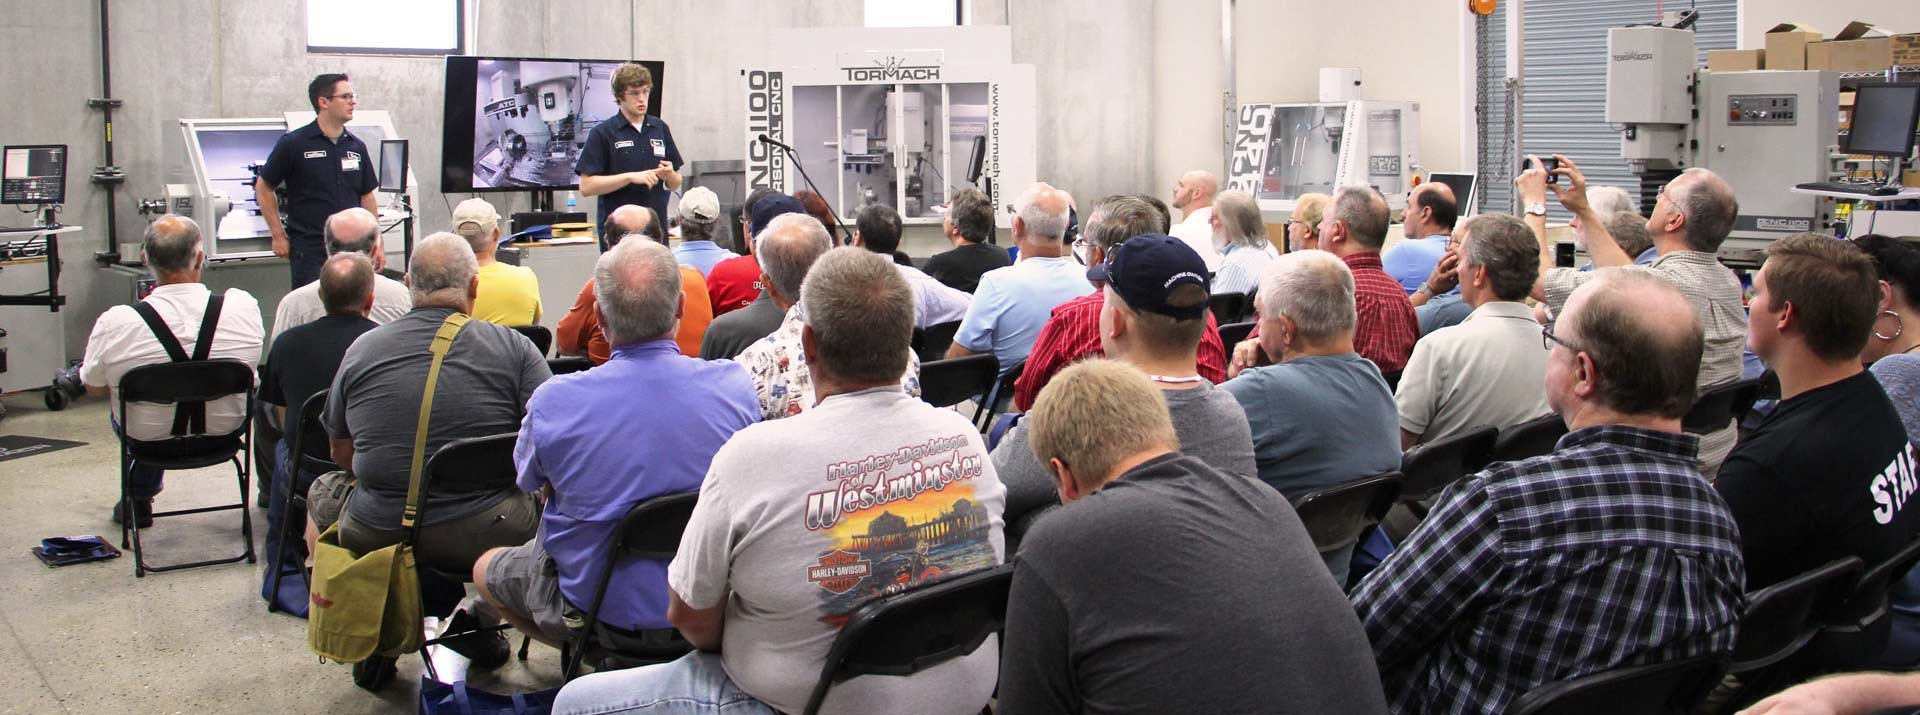 Register Now for Tormach's Weekend of Training and Machining Fun